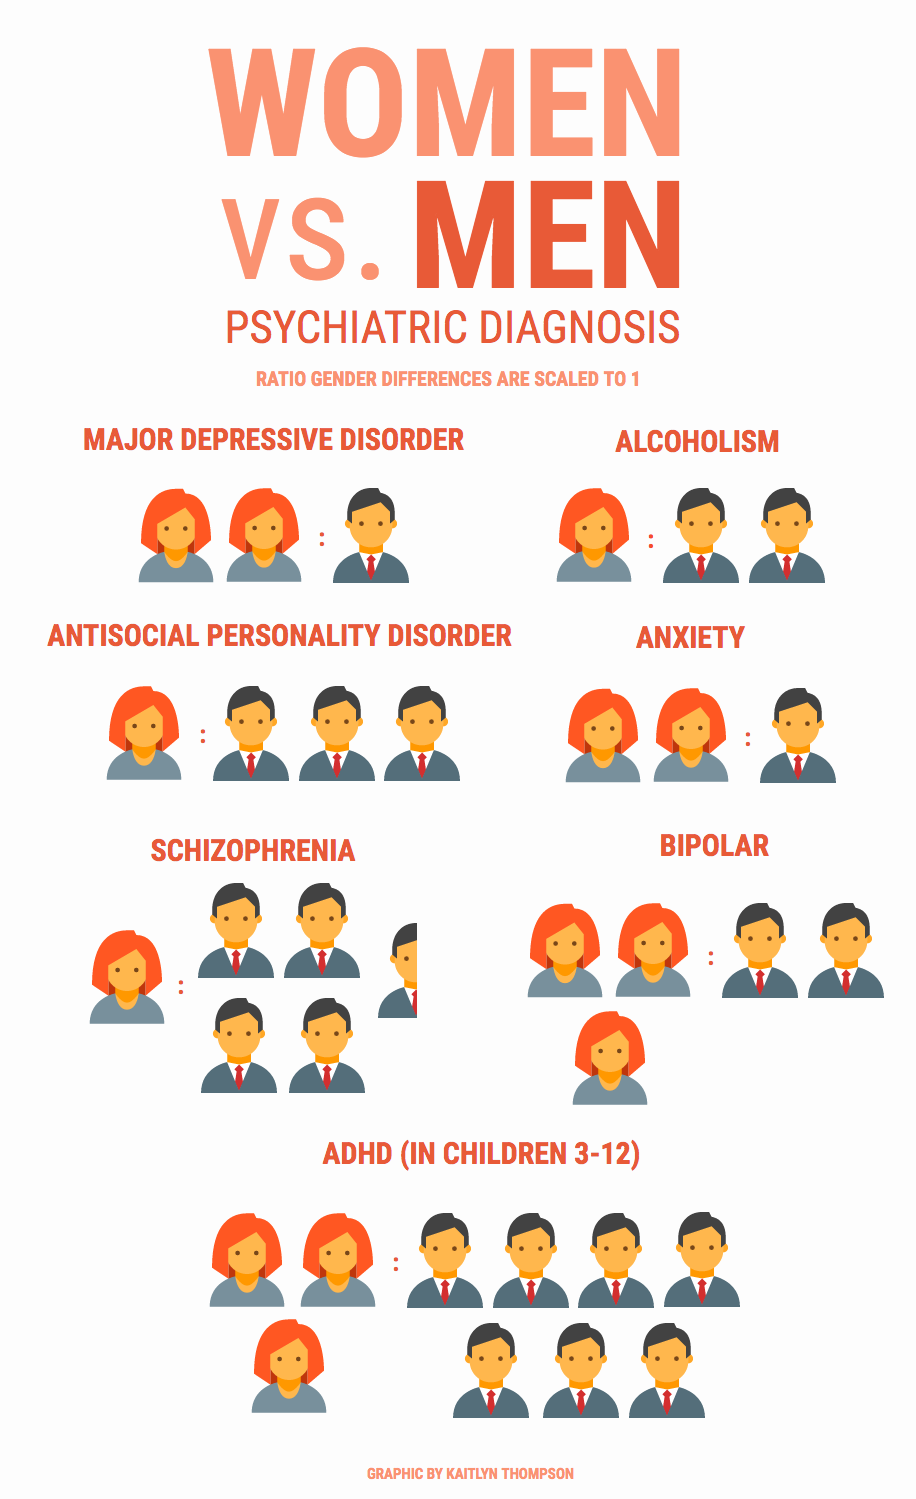 Sex differences in psychological disorders